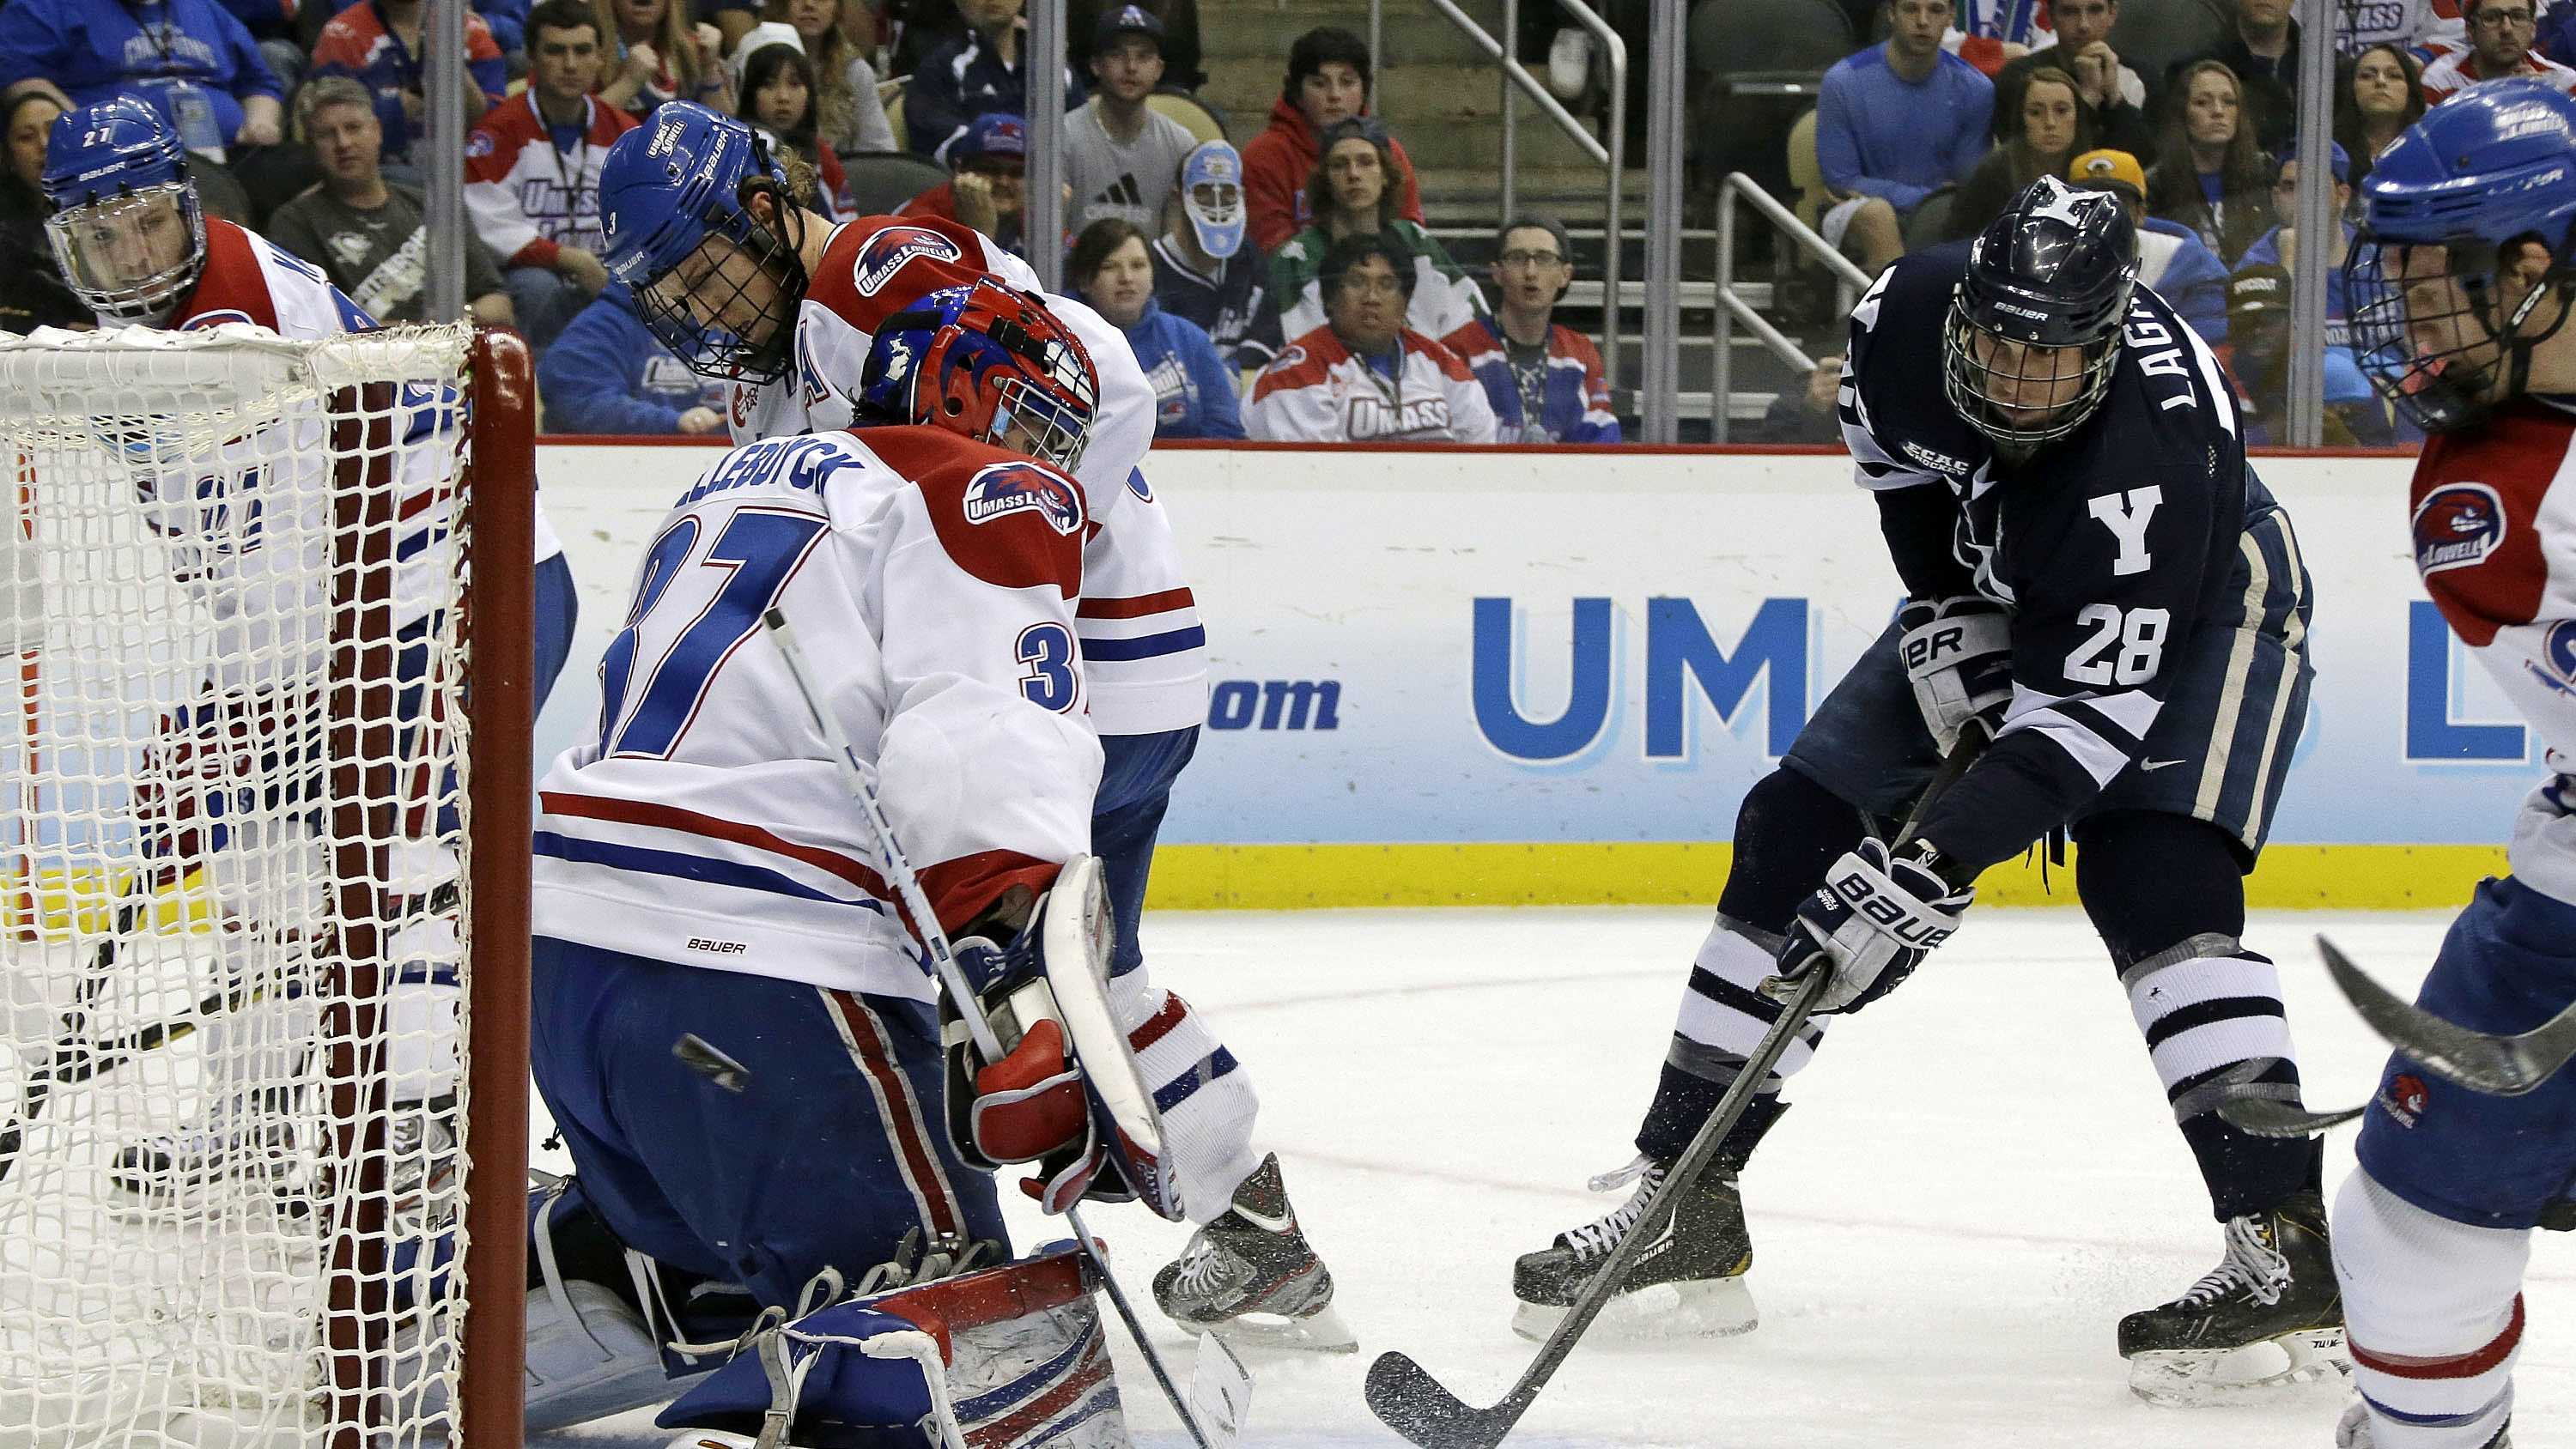 Yale right wing Antoine Laganiere (28) gets the puck behind UMass Lowell goalie Connor Hellebuyck (37) during the first period of an NCAA college hockey game in Pittsburgh, April 11, 2013.